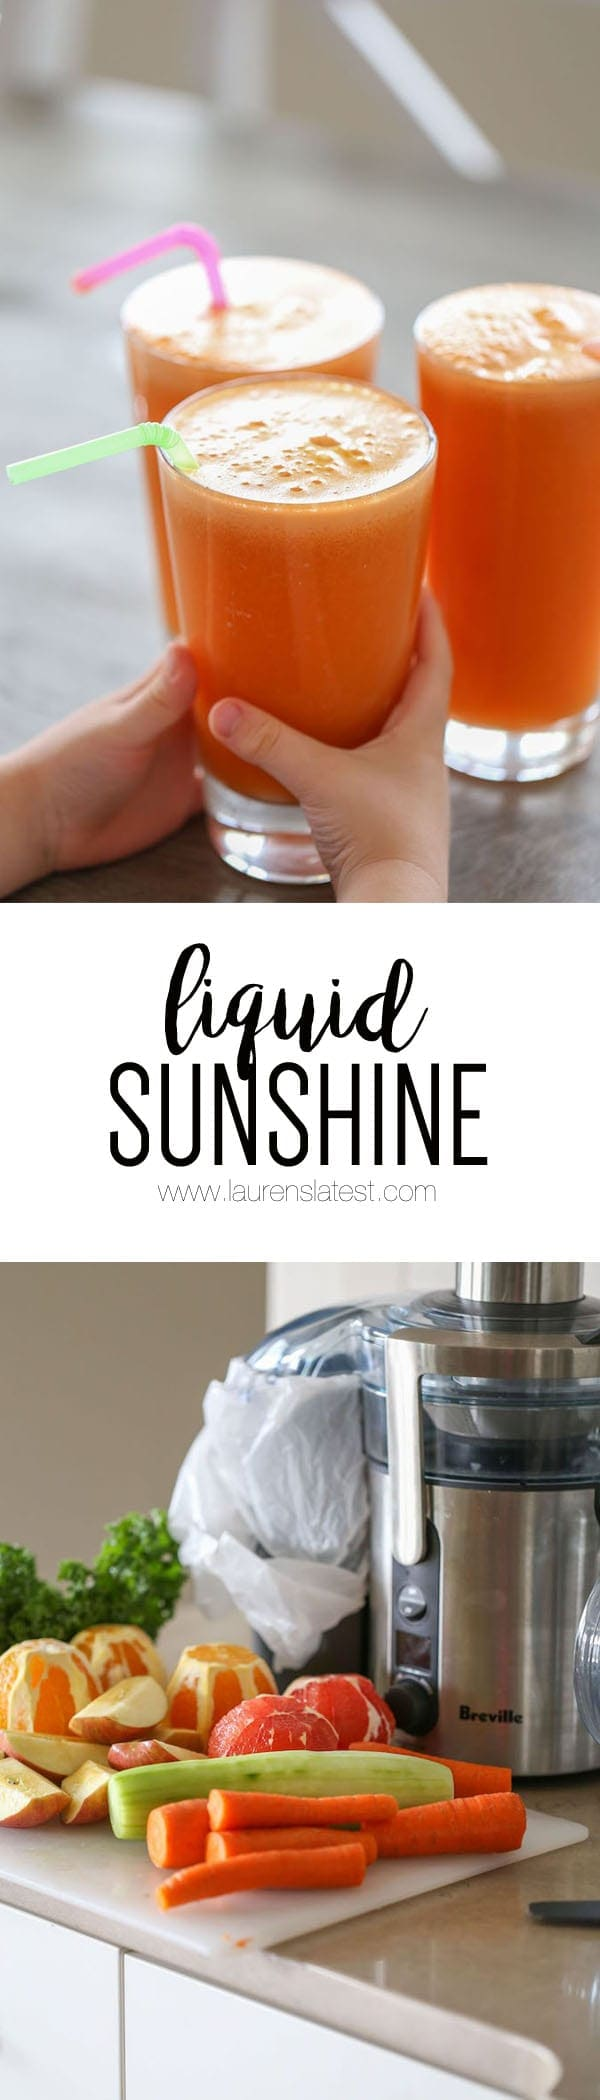 Liquid Sunshine is the best immune-boosting, nutrient rich, actually delicious fresh juice that will have you glowing from the inside out in no time!